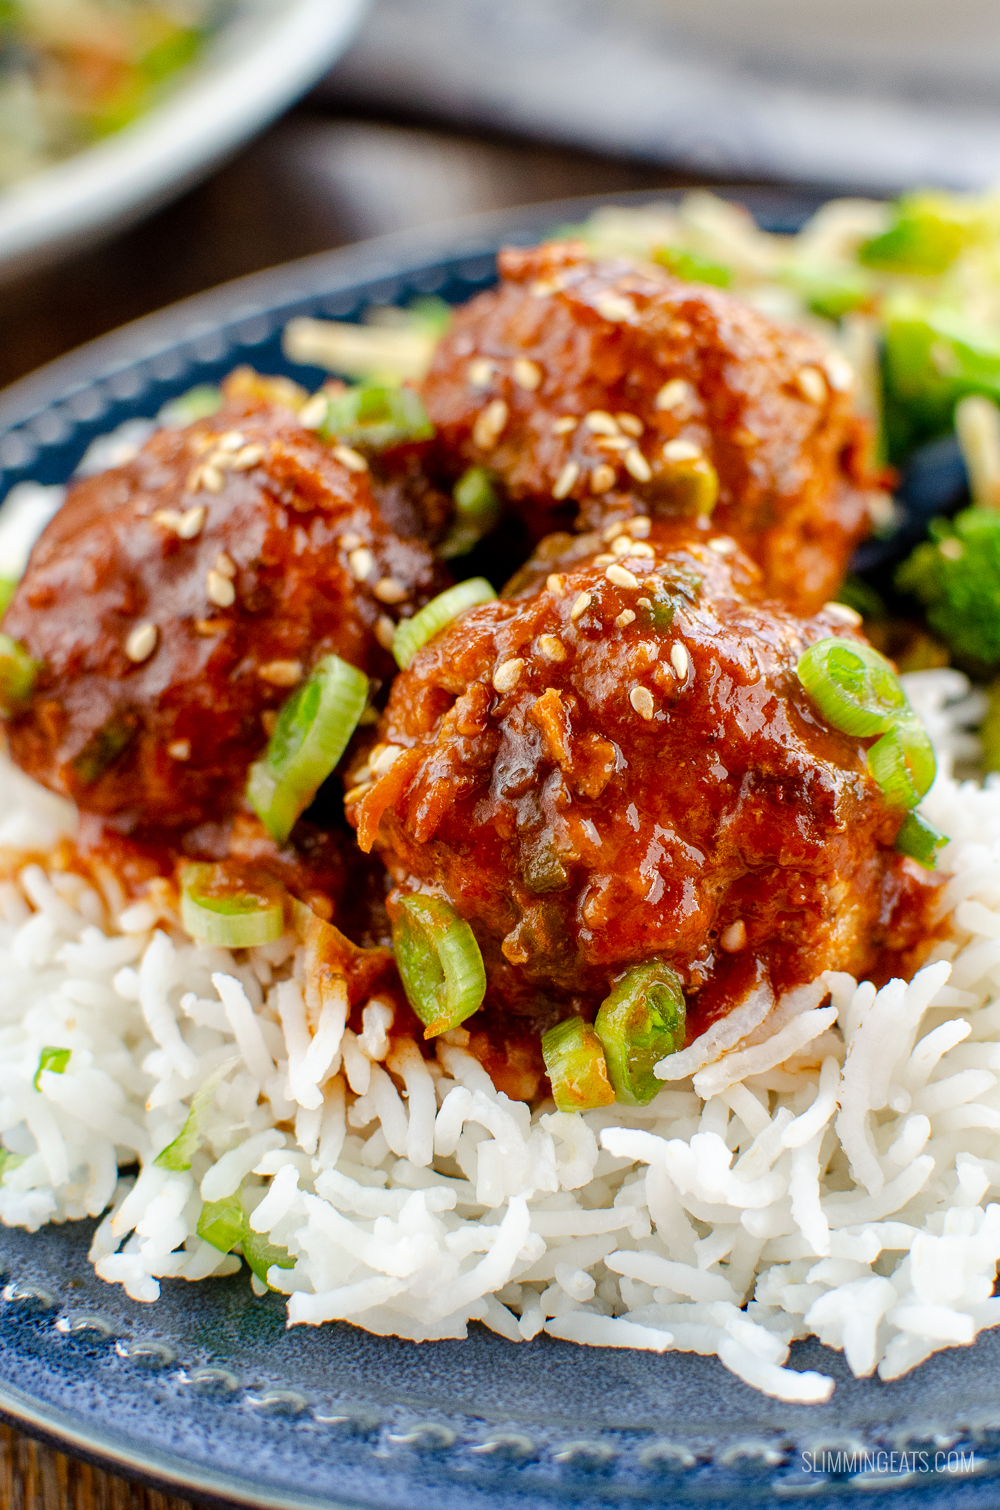 close up of firecracker chicken meatballs on blue plate with rice and stir fried vegetables